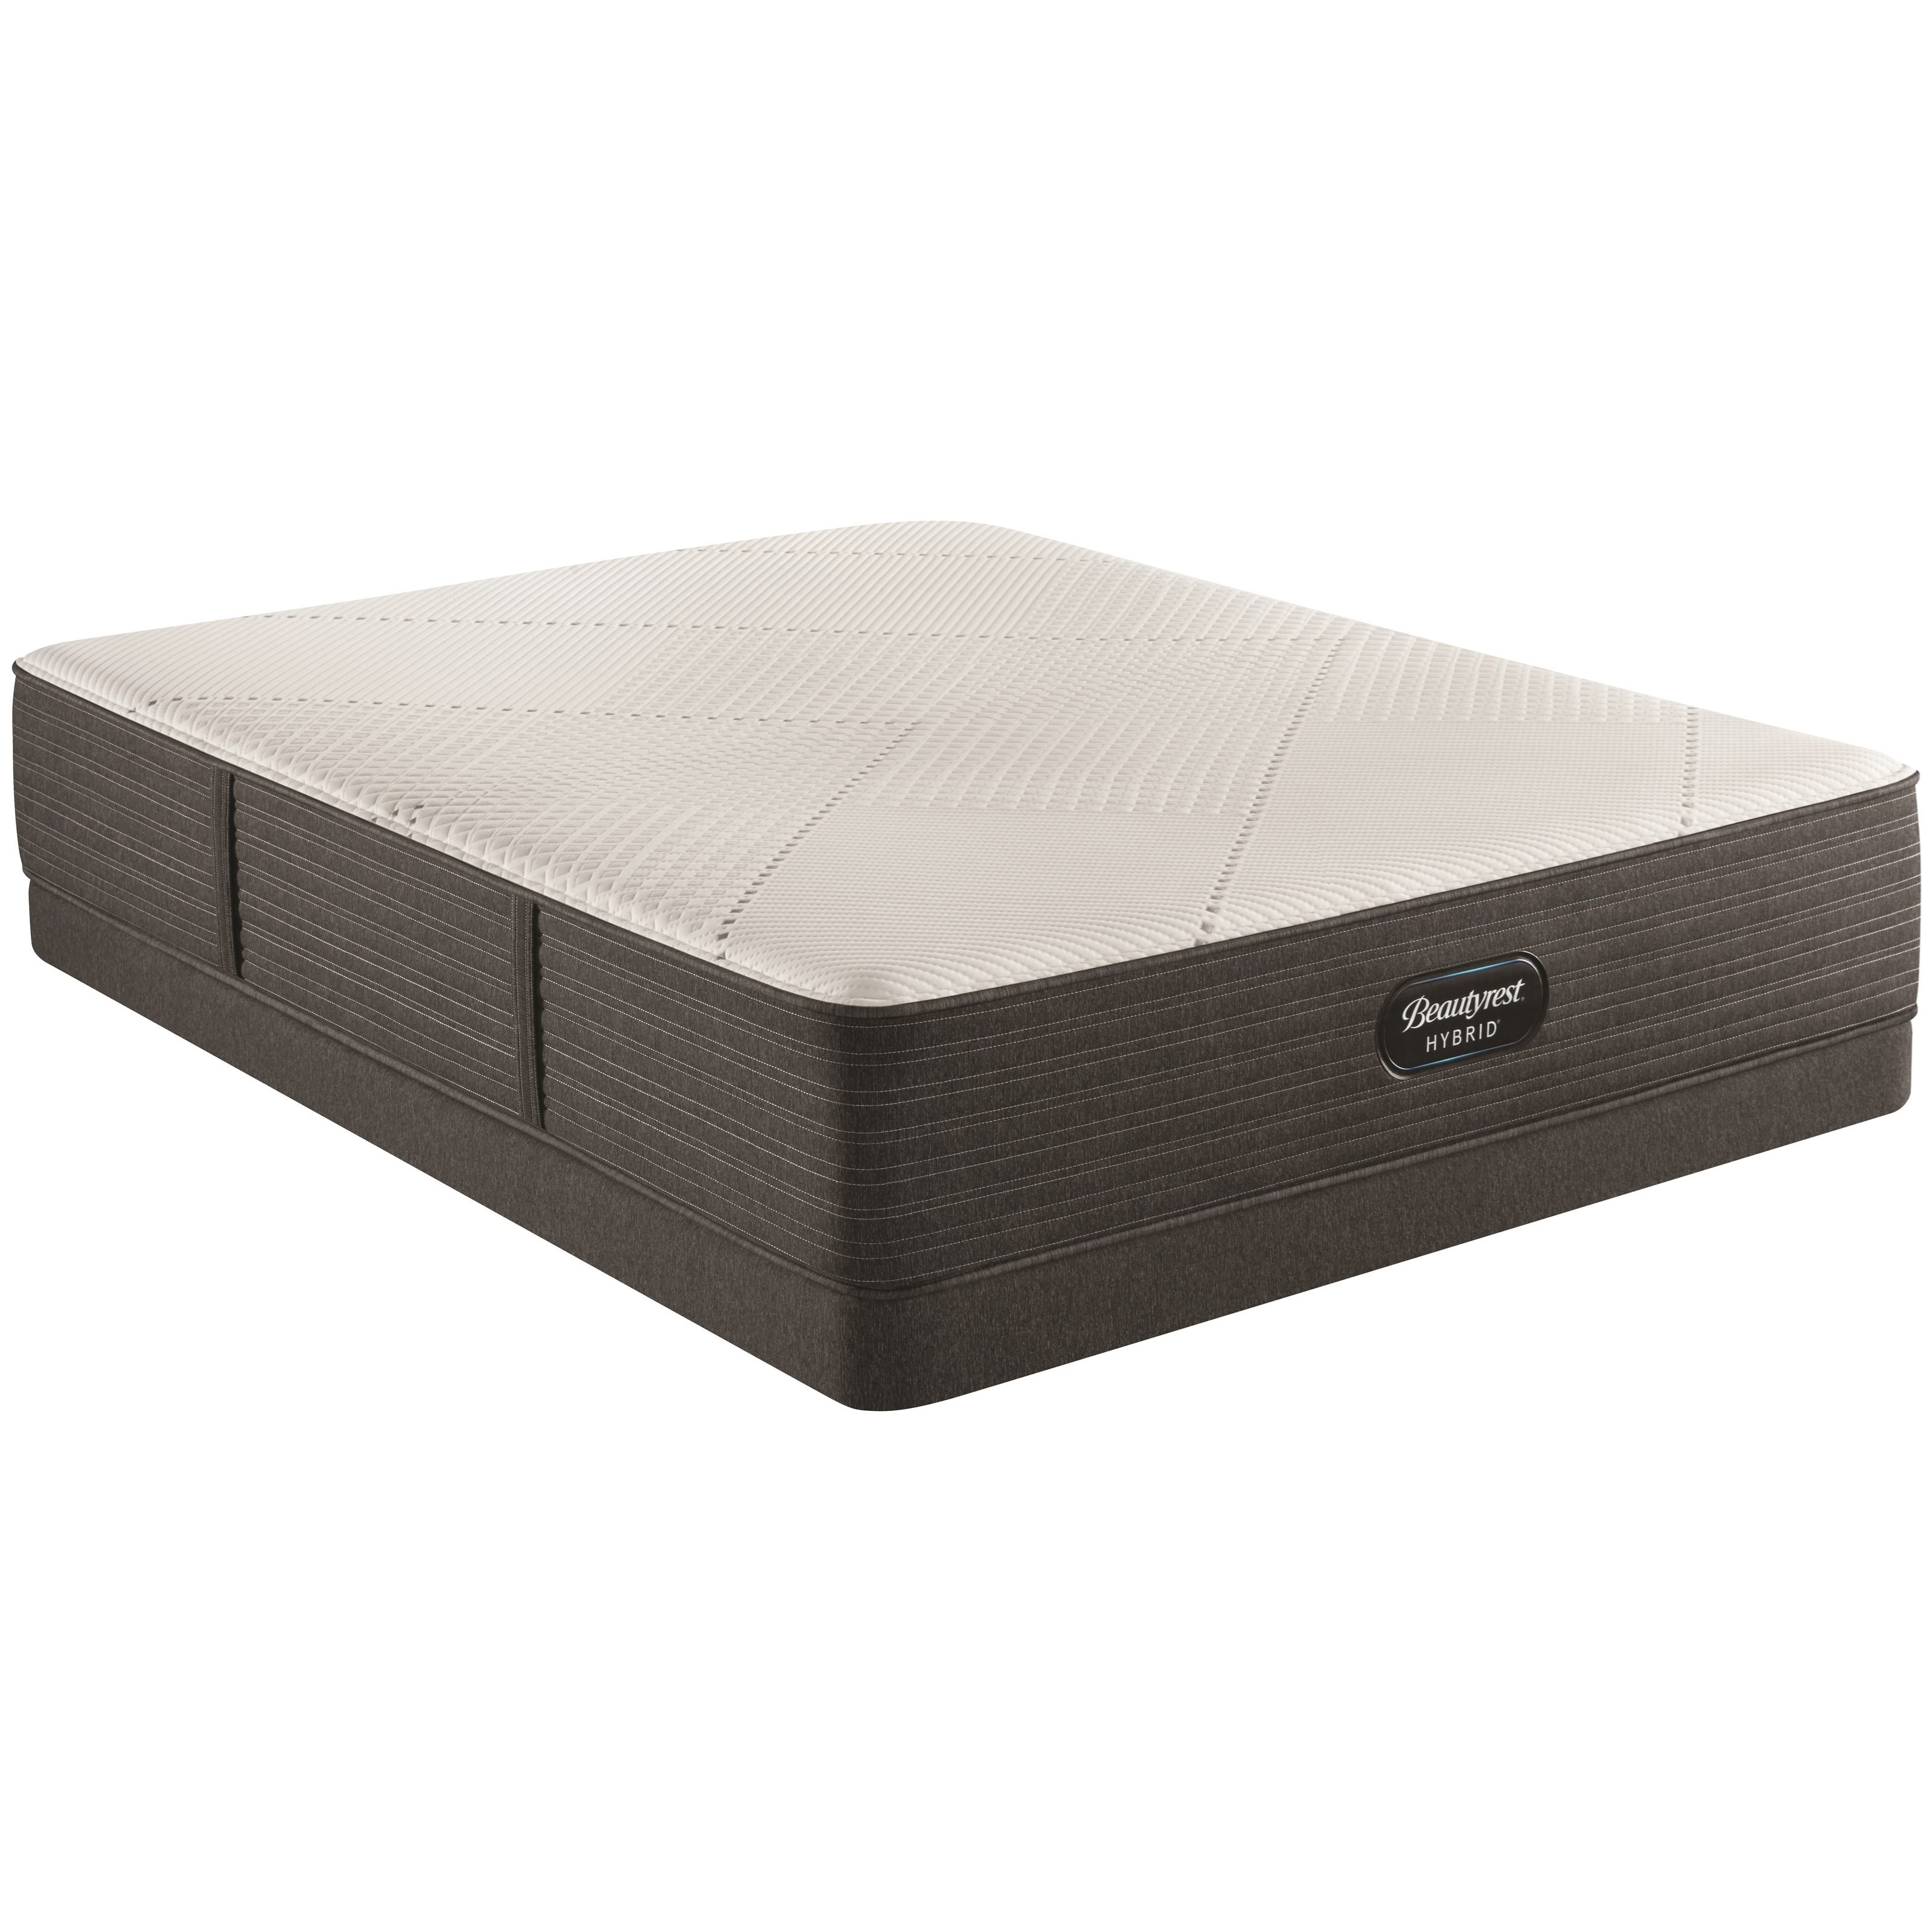 """BRX1000-IP Medium Twin 13 1/2"""" Hybrid Low Profile Set by Beautyrest at Morris Home"""